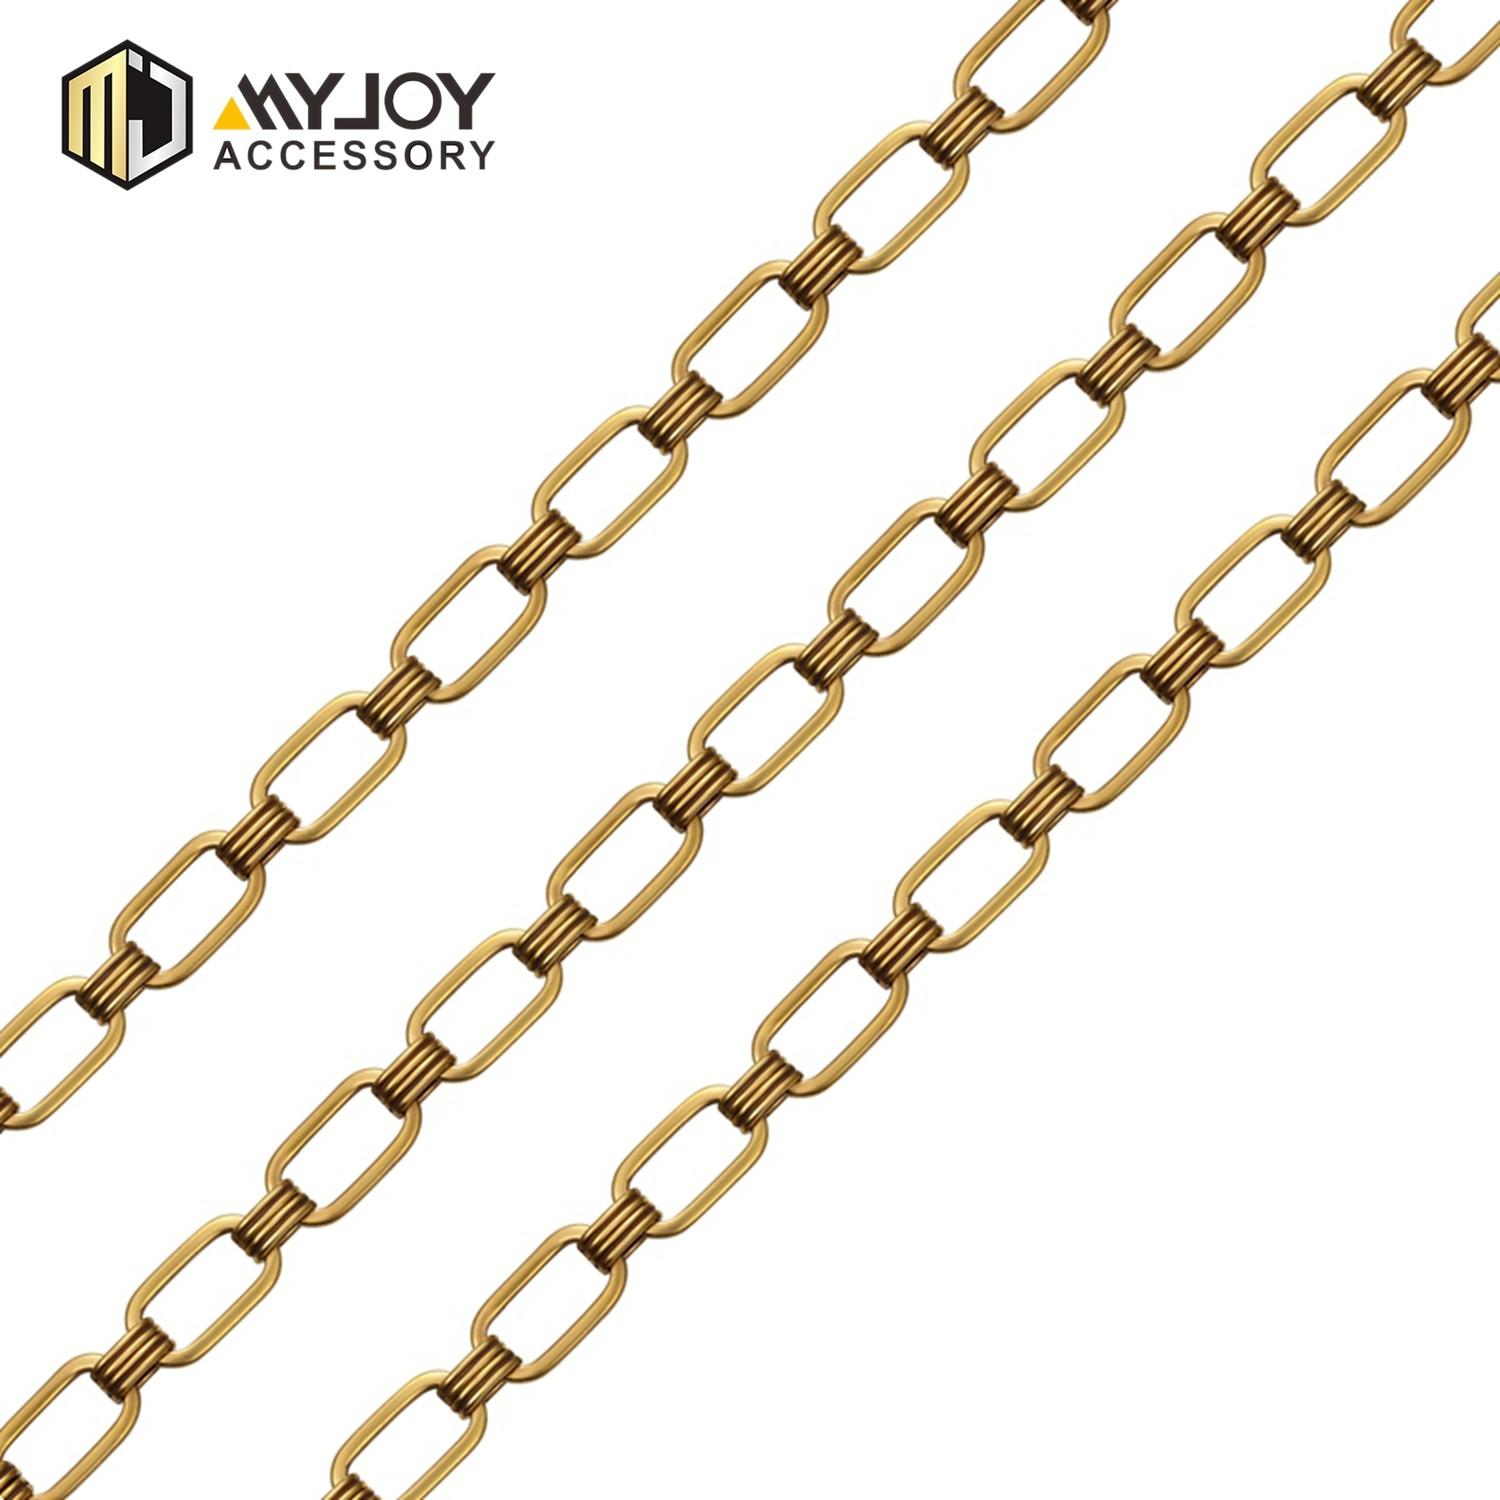 MYJOY High-quality chain strap supply for bags